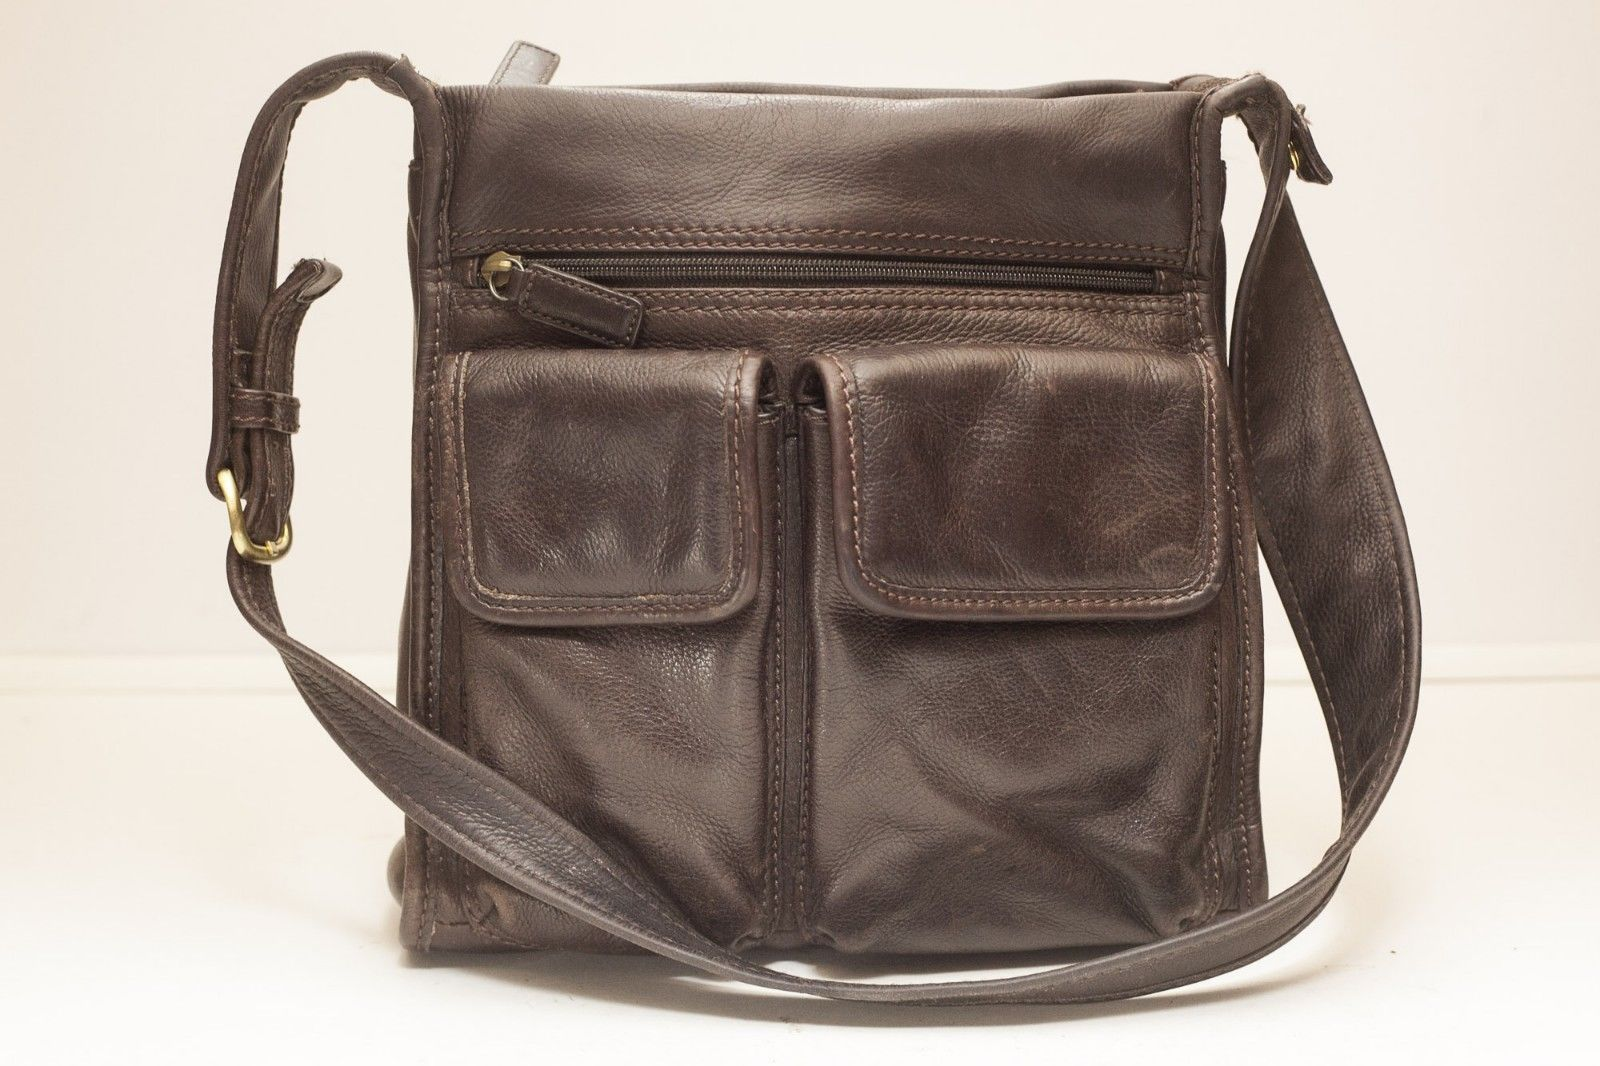 Fossil Handbag Brown Leather 75082